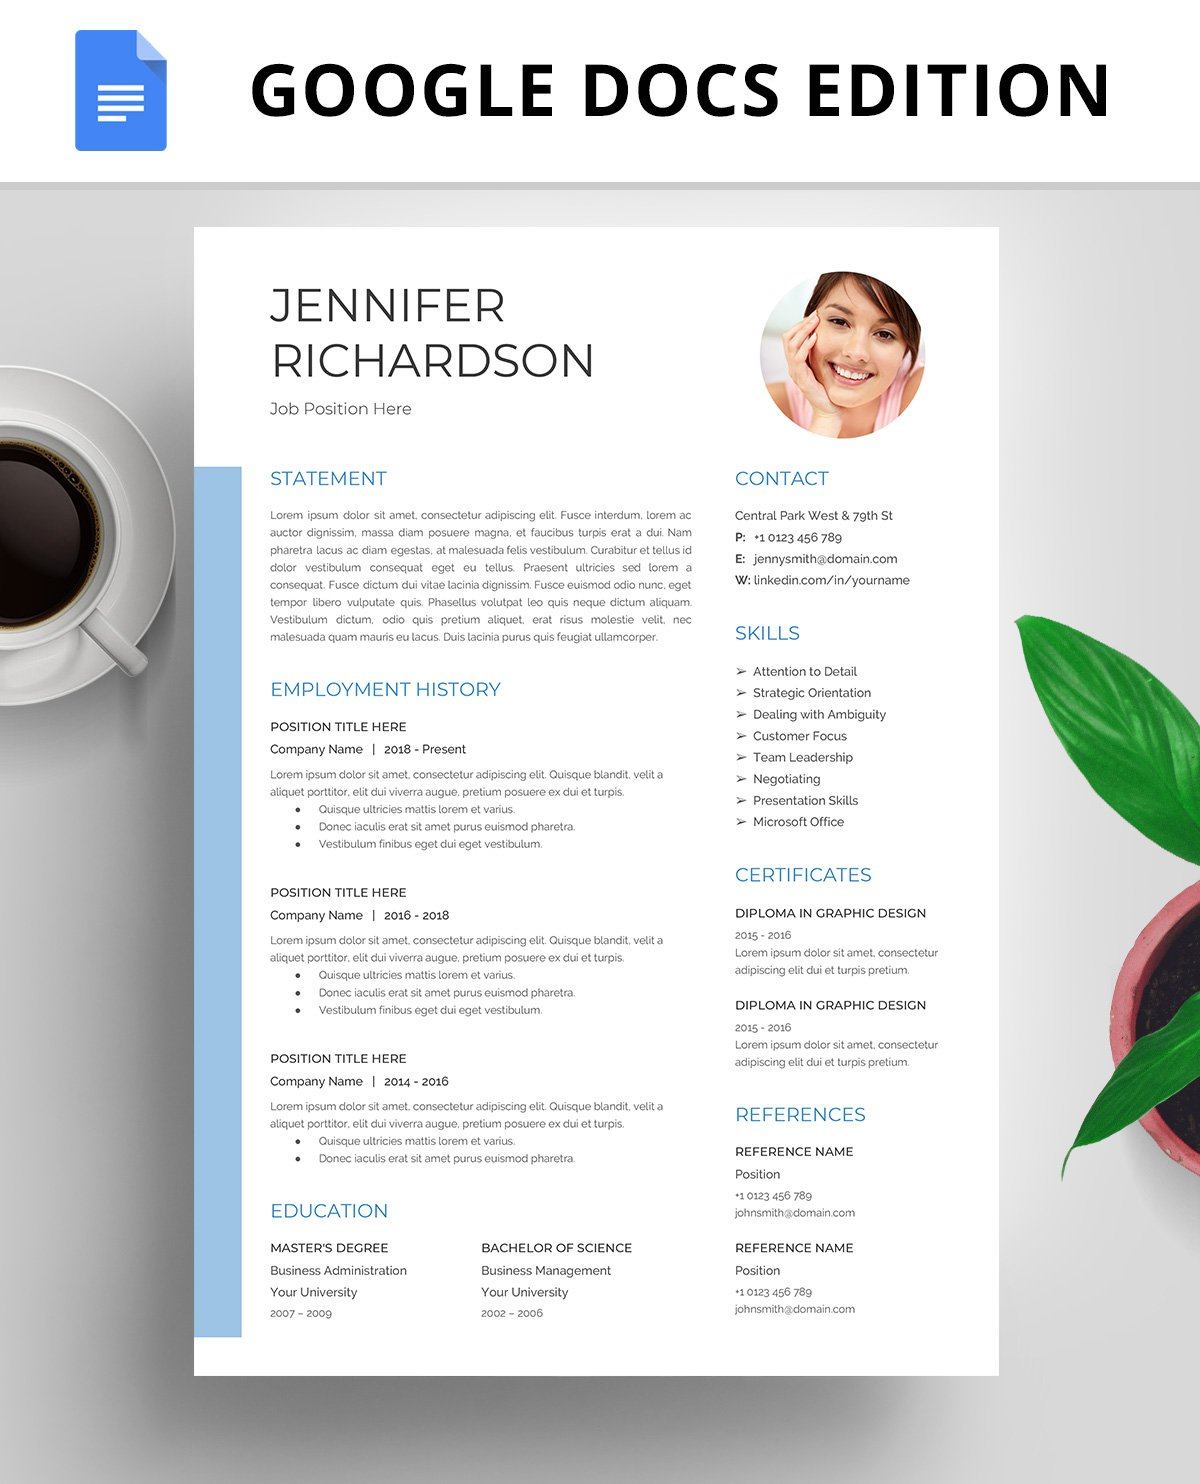 Resume Template, CV, Google Docs